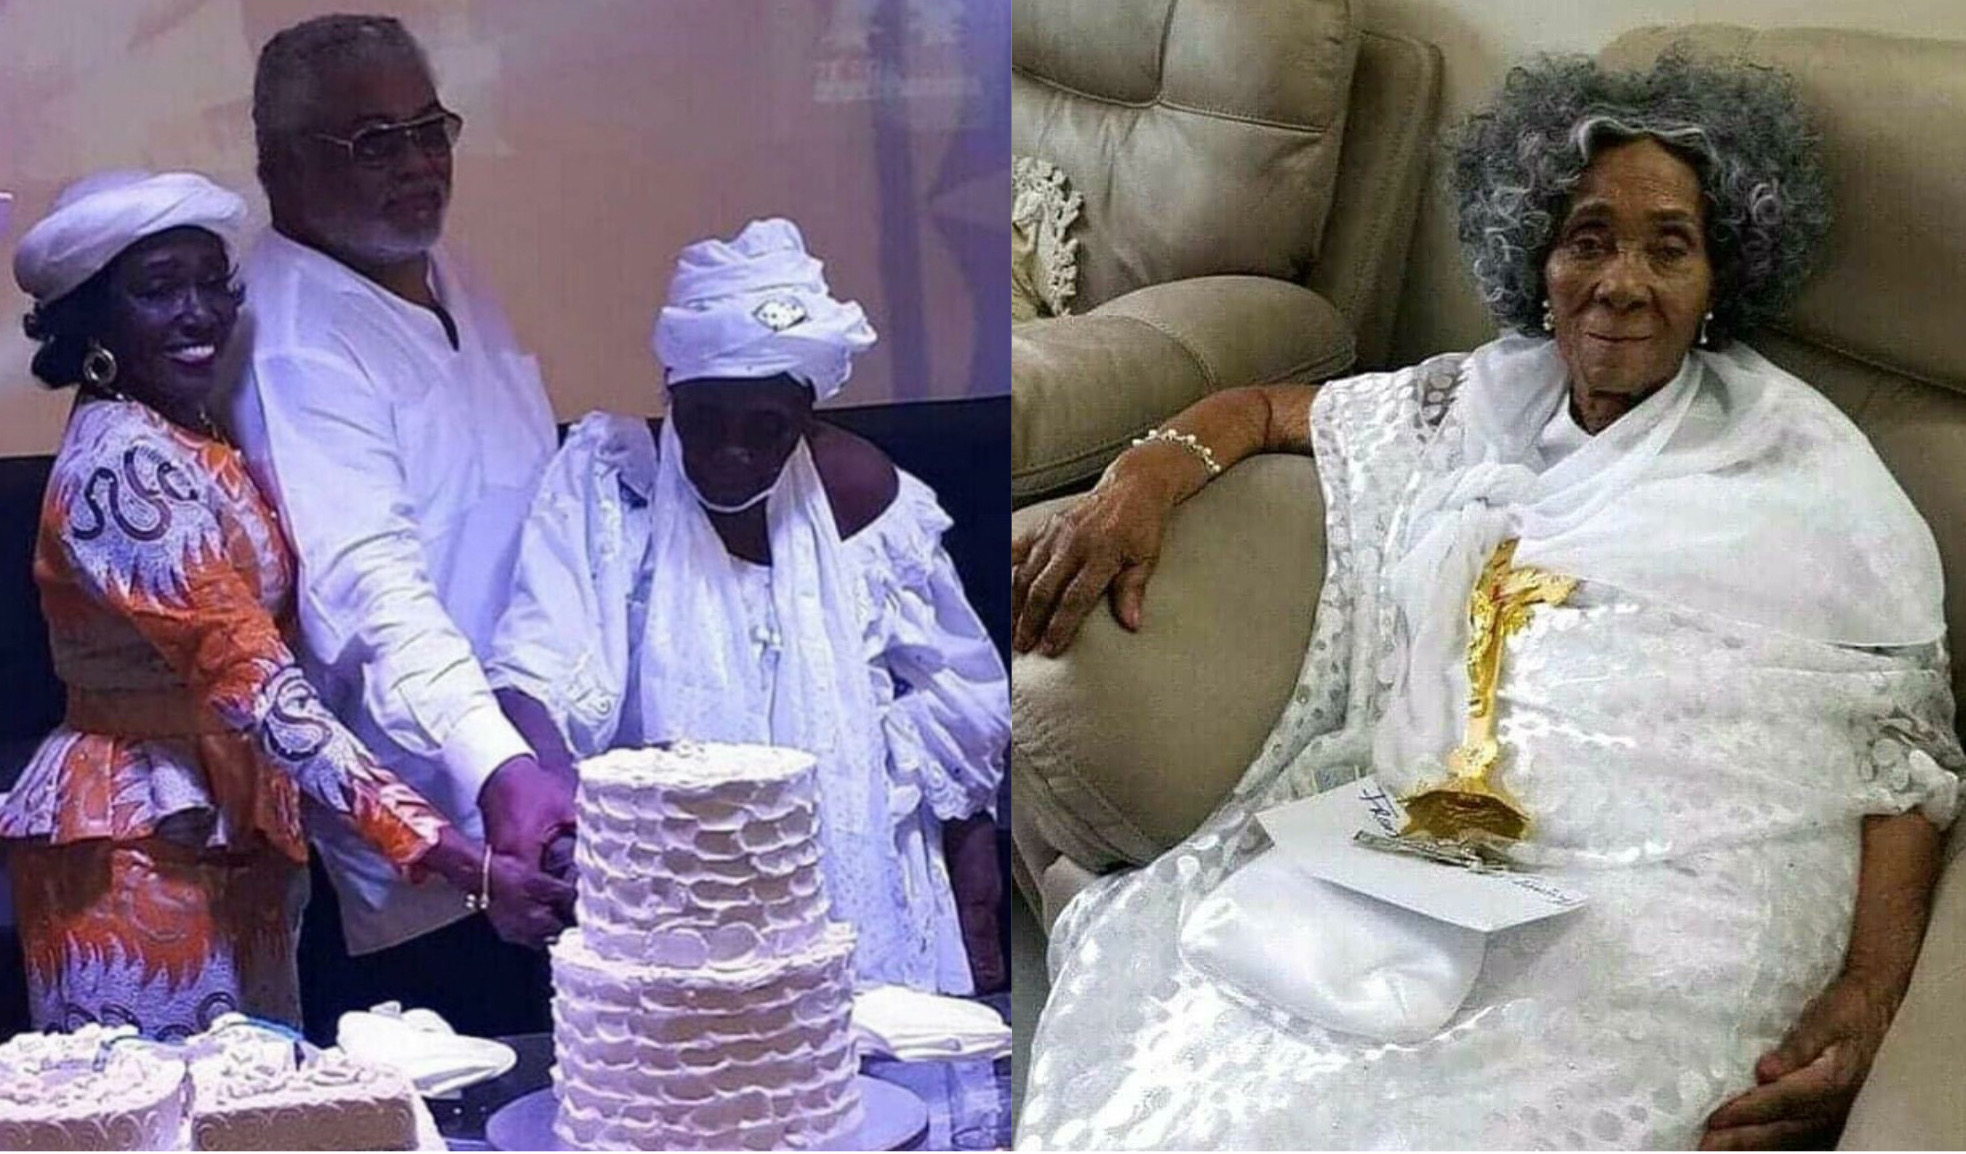 Madam Victoria Agbotui, Mother Of Former President JJ Rawlings Turns 101-Years-Old Today